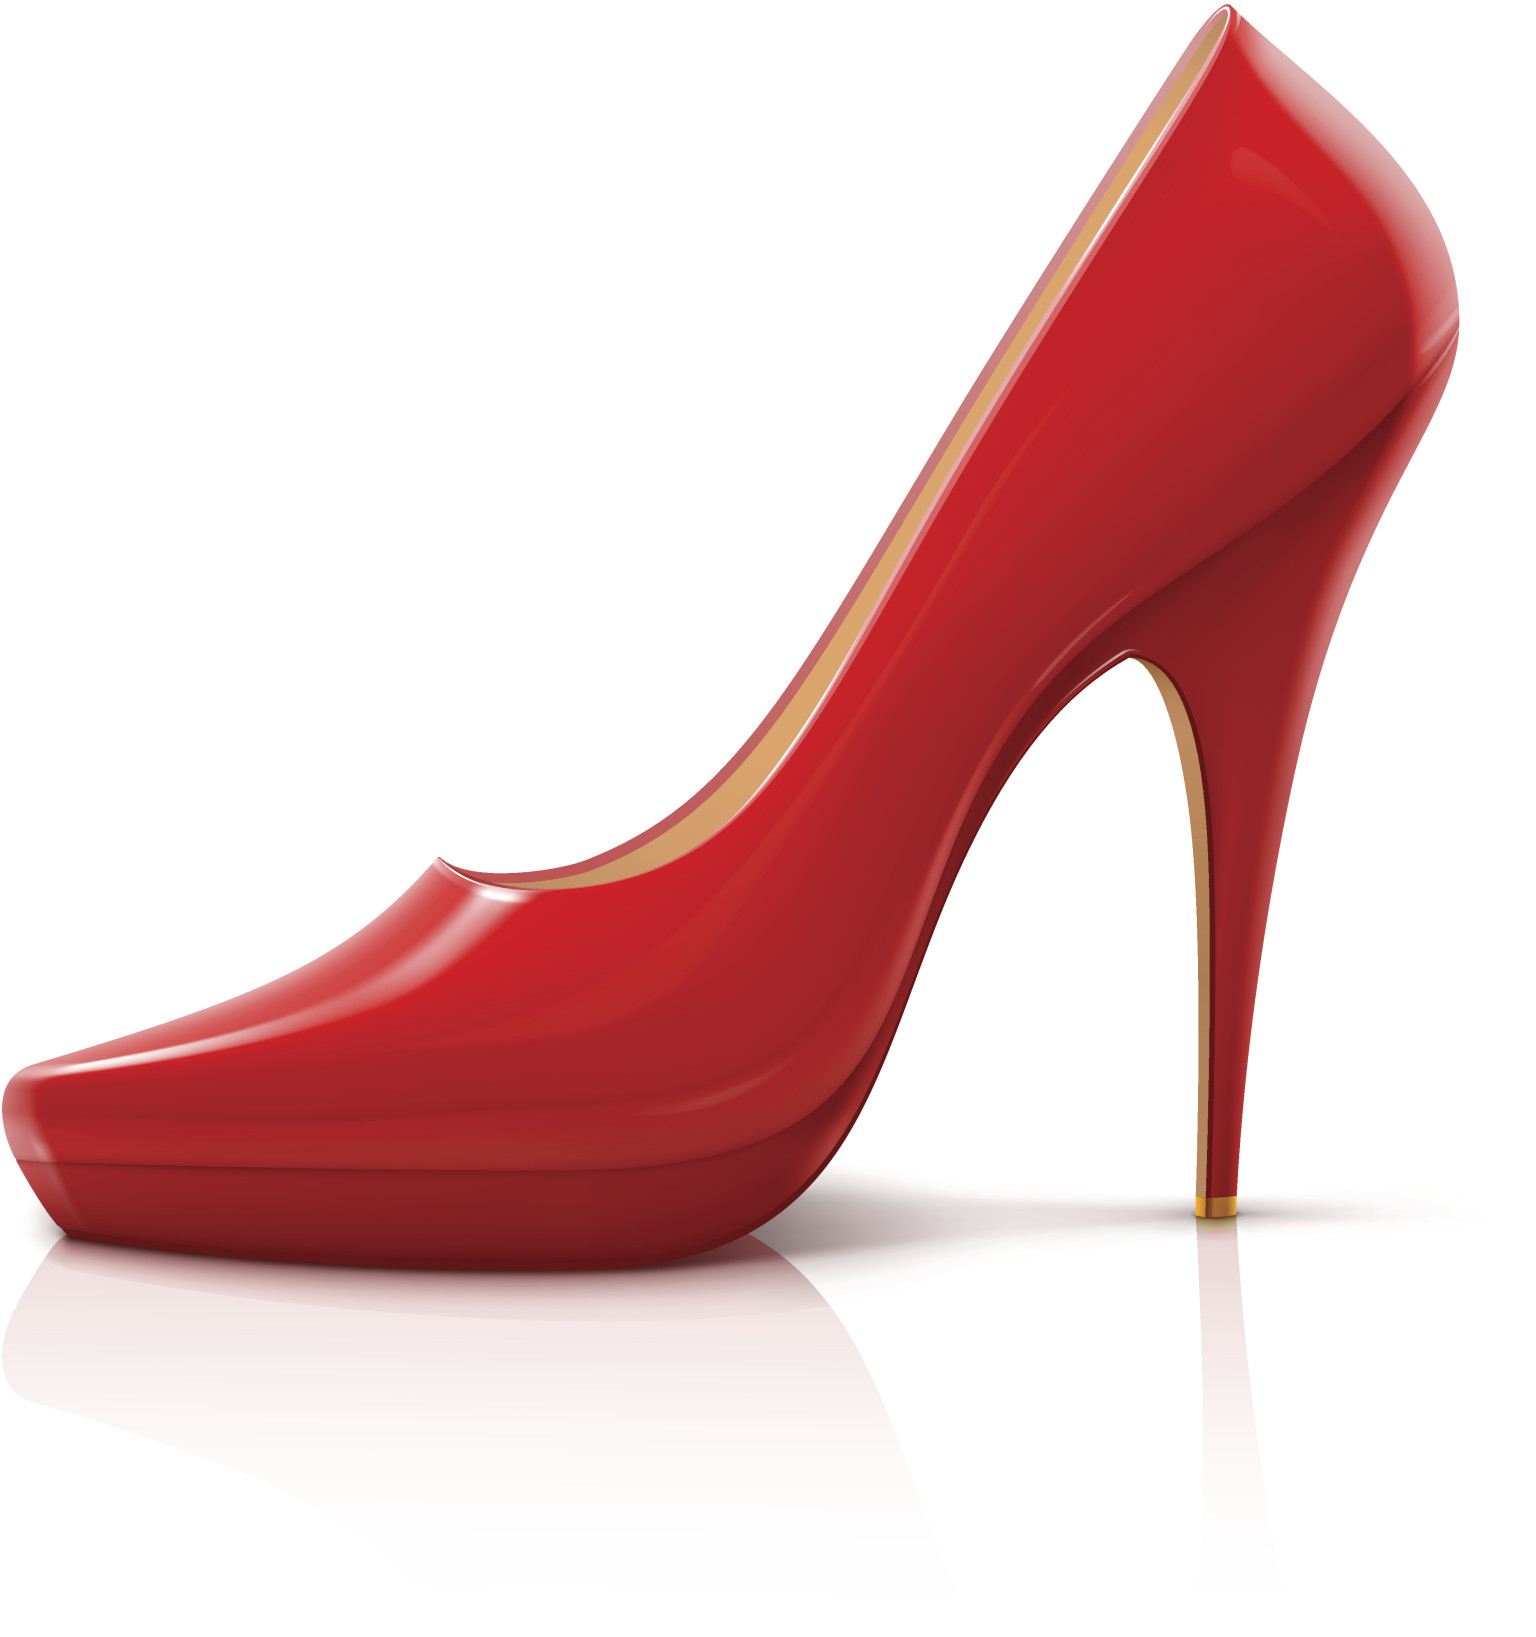 High Heels Shoes Vector